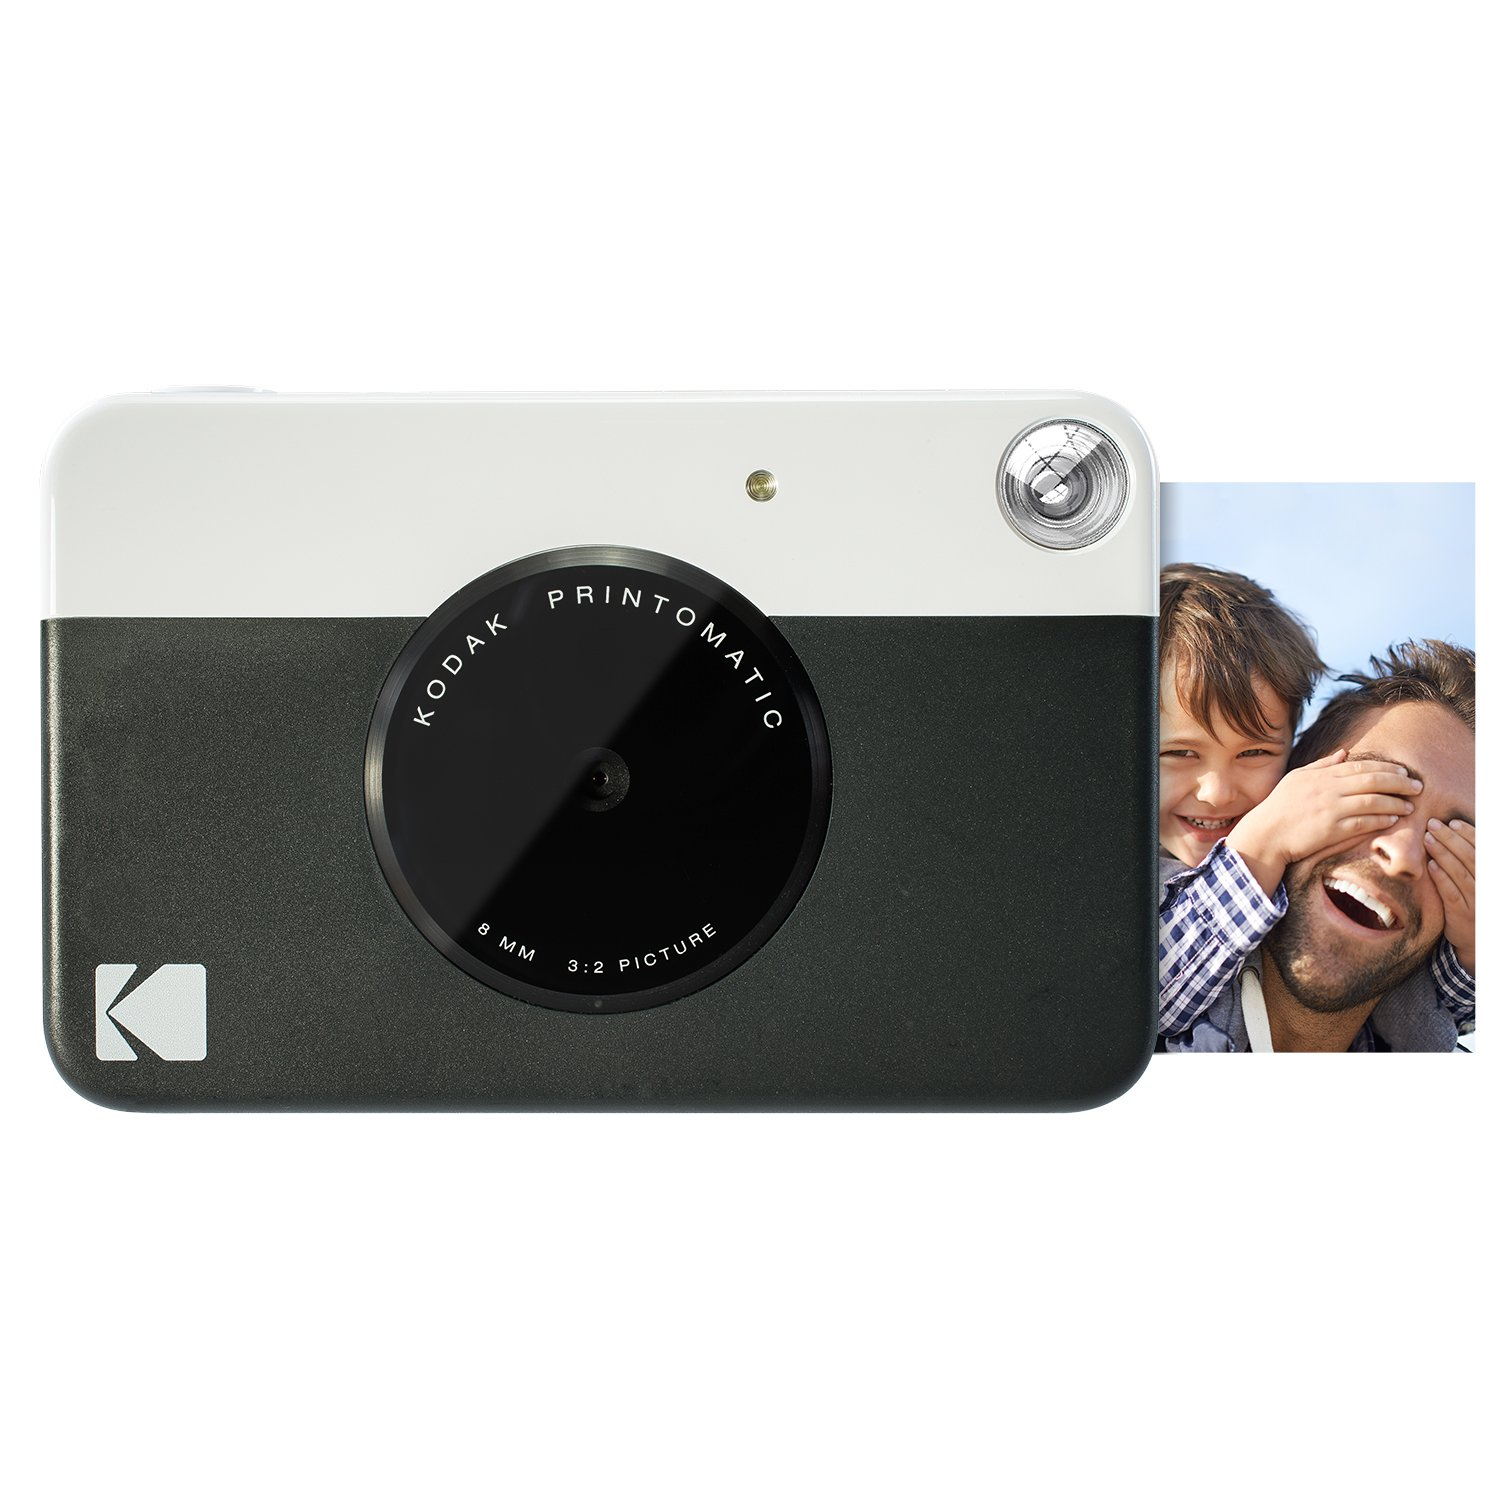 Kodak PRINTOMATIC Digital Instant Print Camera (Black), Full